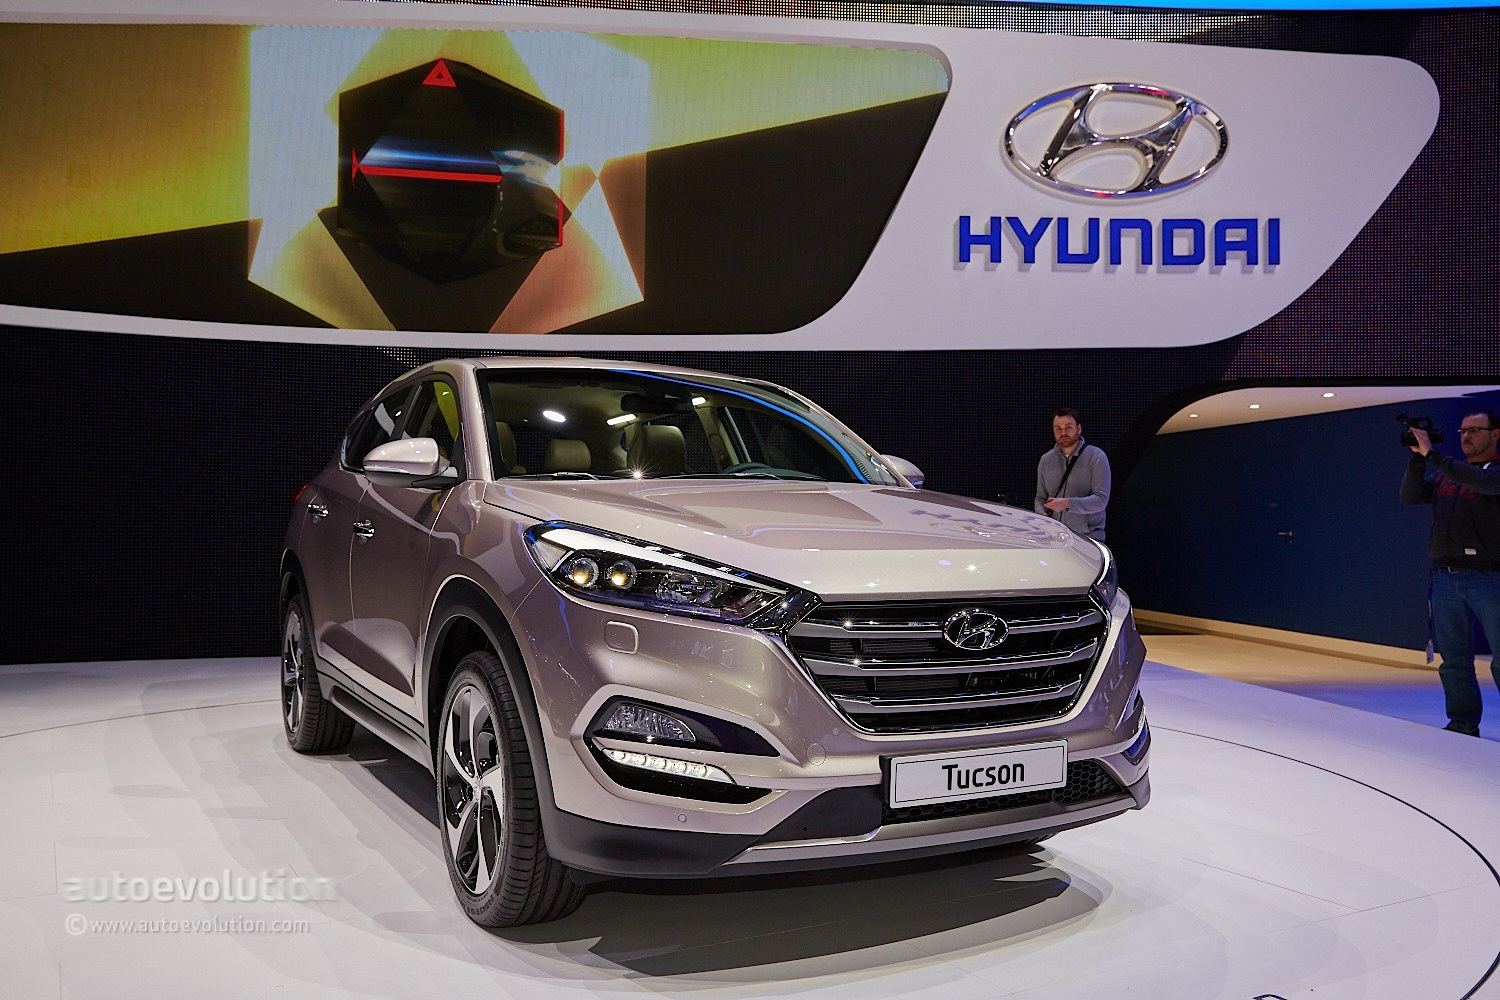 2016 hyundai tucson debuts in geneva with 48v hybrid and phev engines autoevolution. Black Bedroom Furniture Sets. Home Design Ideas